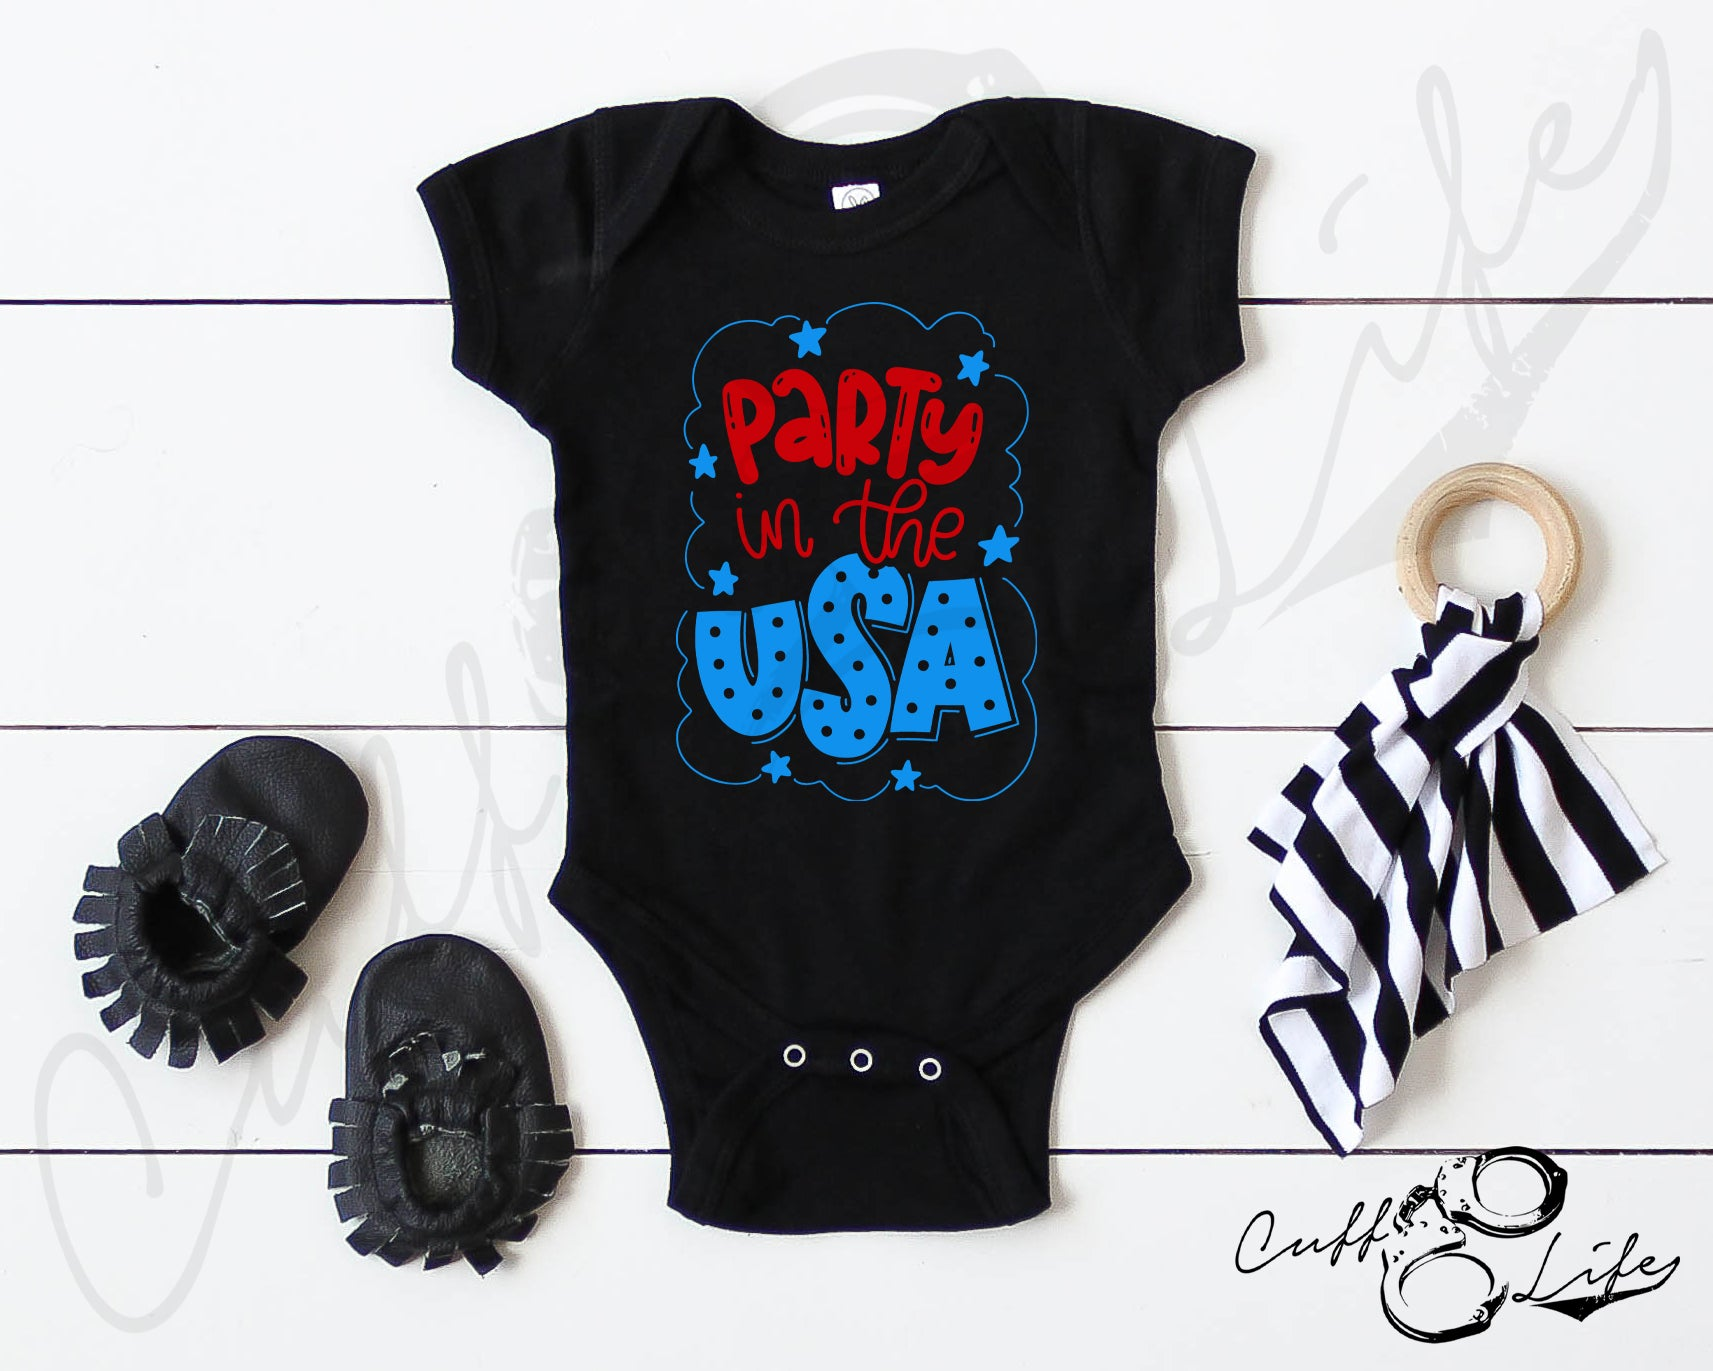 Party in the USA - Infant Bodysuit